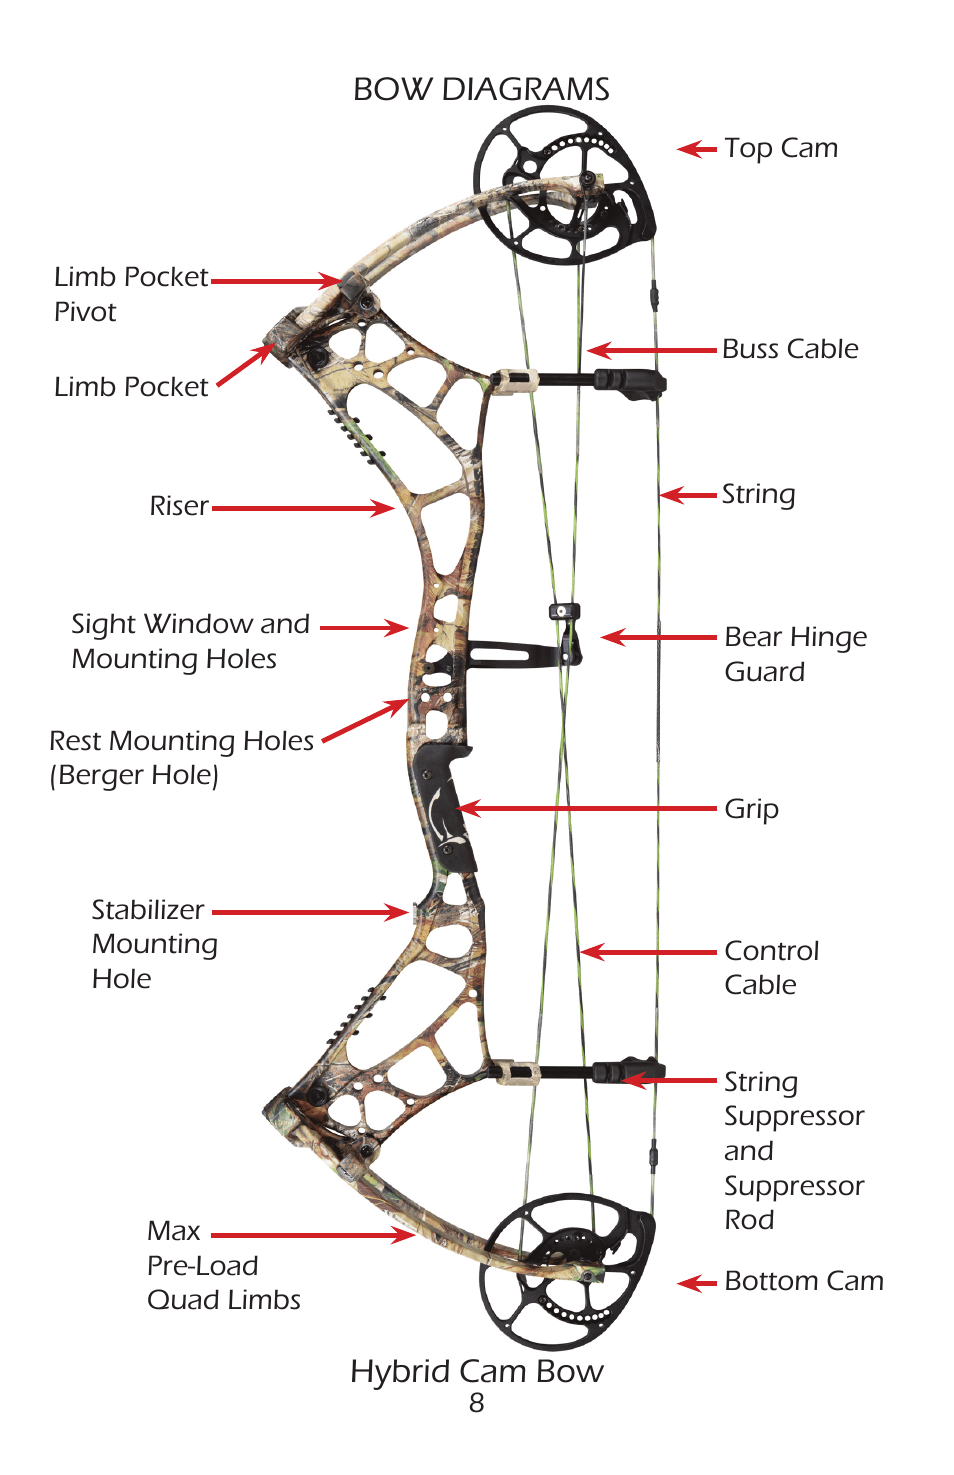 medium resolution of bow diagrams hybrid cam bow bear archery compound bow 2014 user manual page 11 40